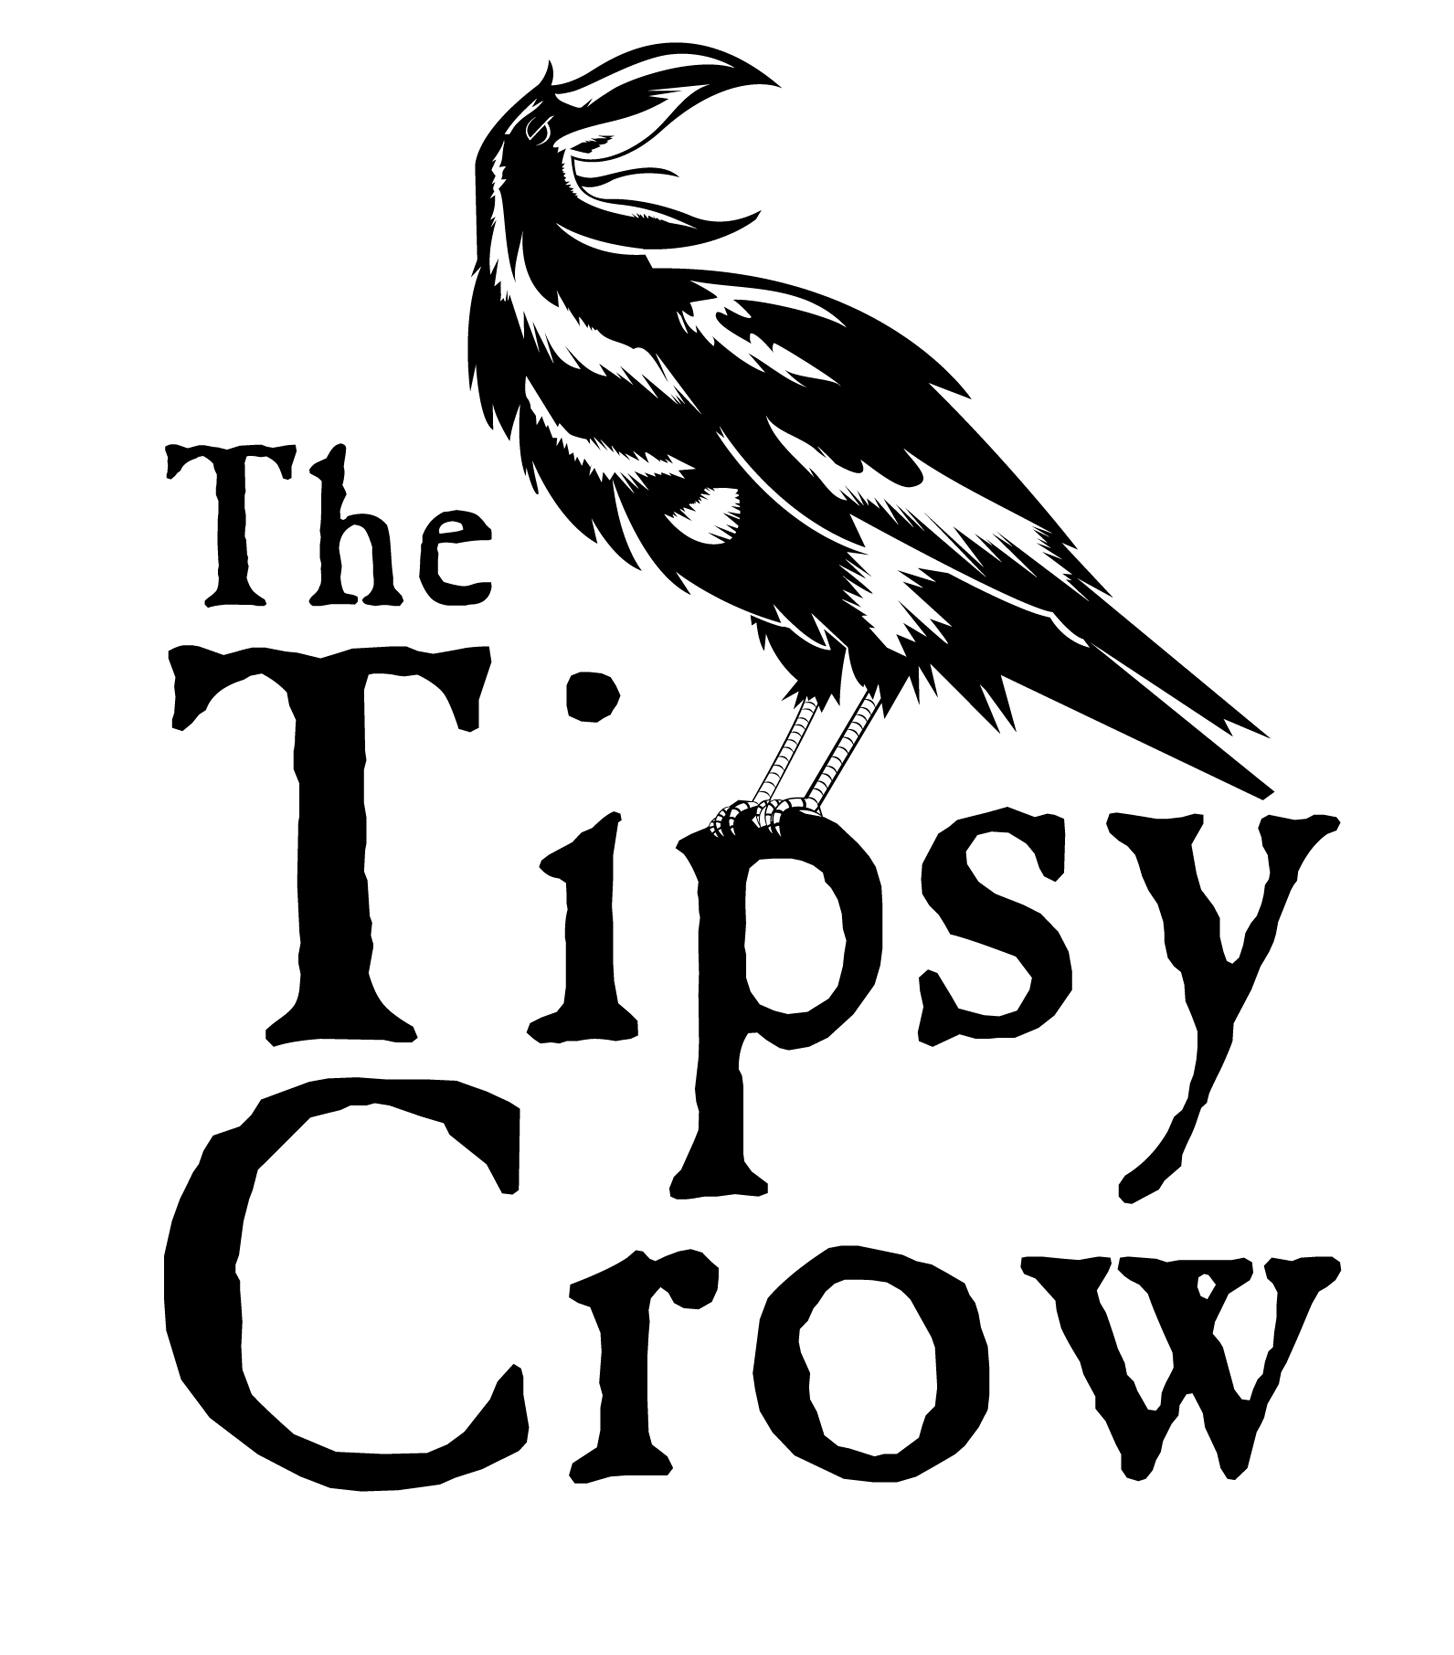 The Tipsy Crow bar, lounge & dancing, located in the San Diego Gaslamp Quarter